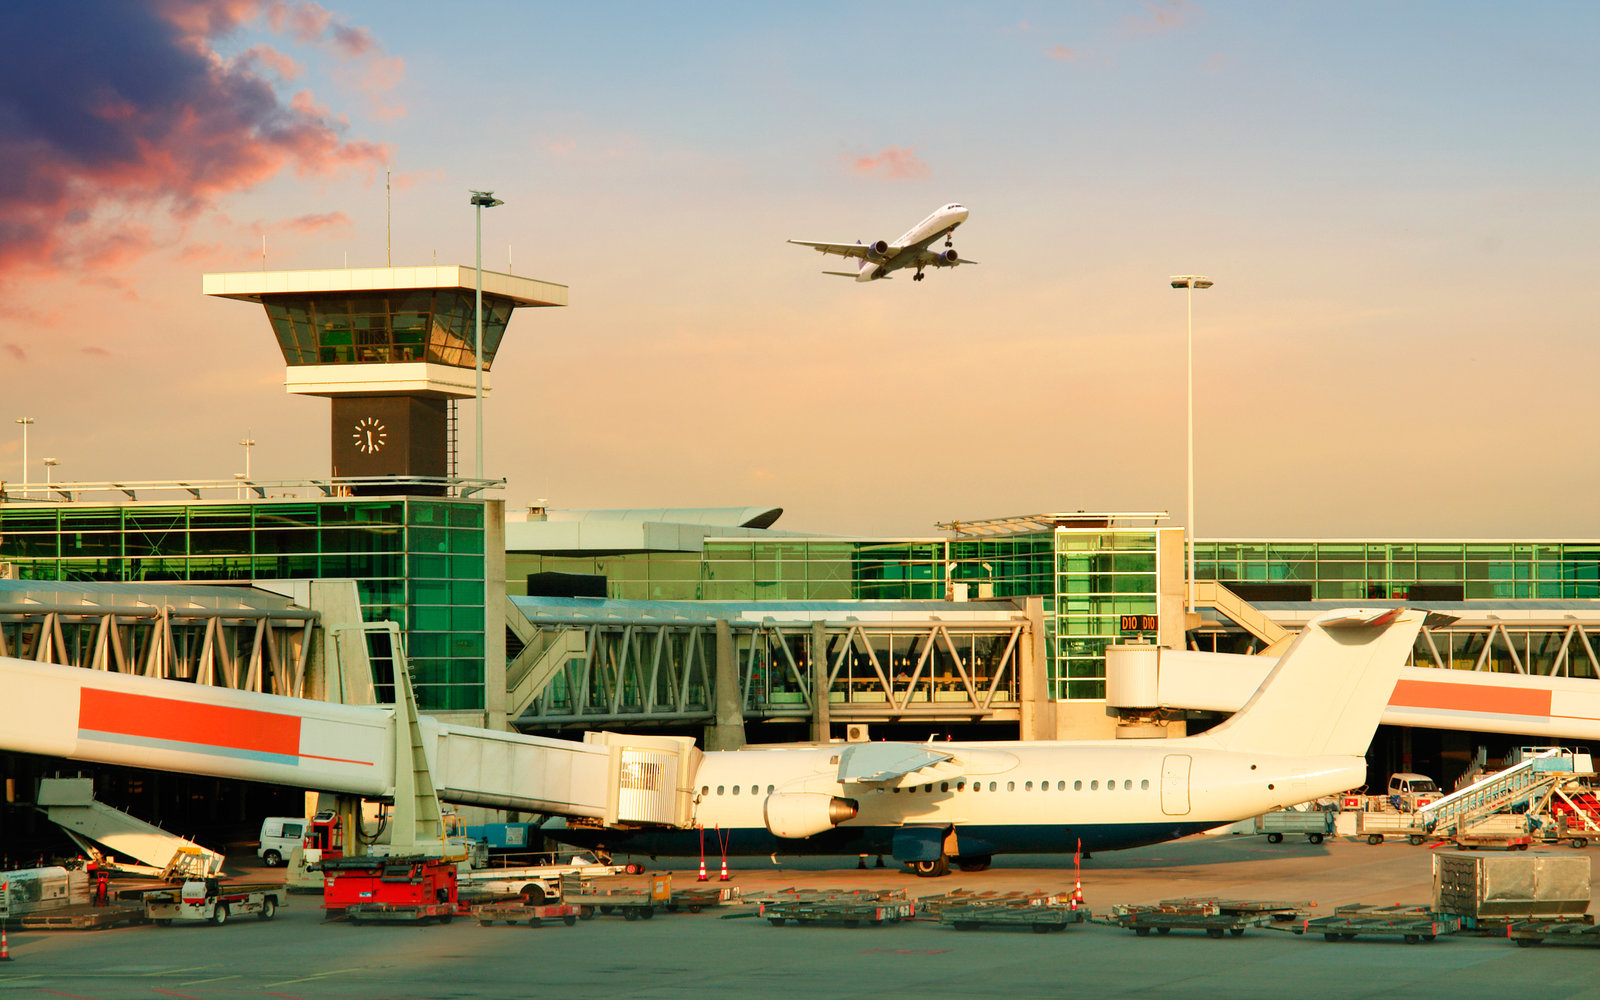 No. 10: Amsterdam Airport Schiphol (AMS)